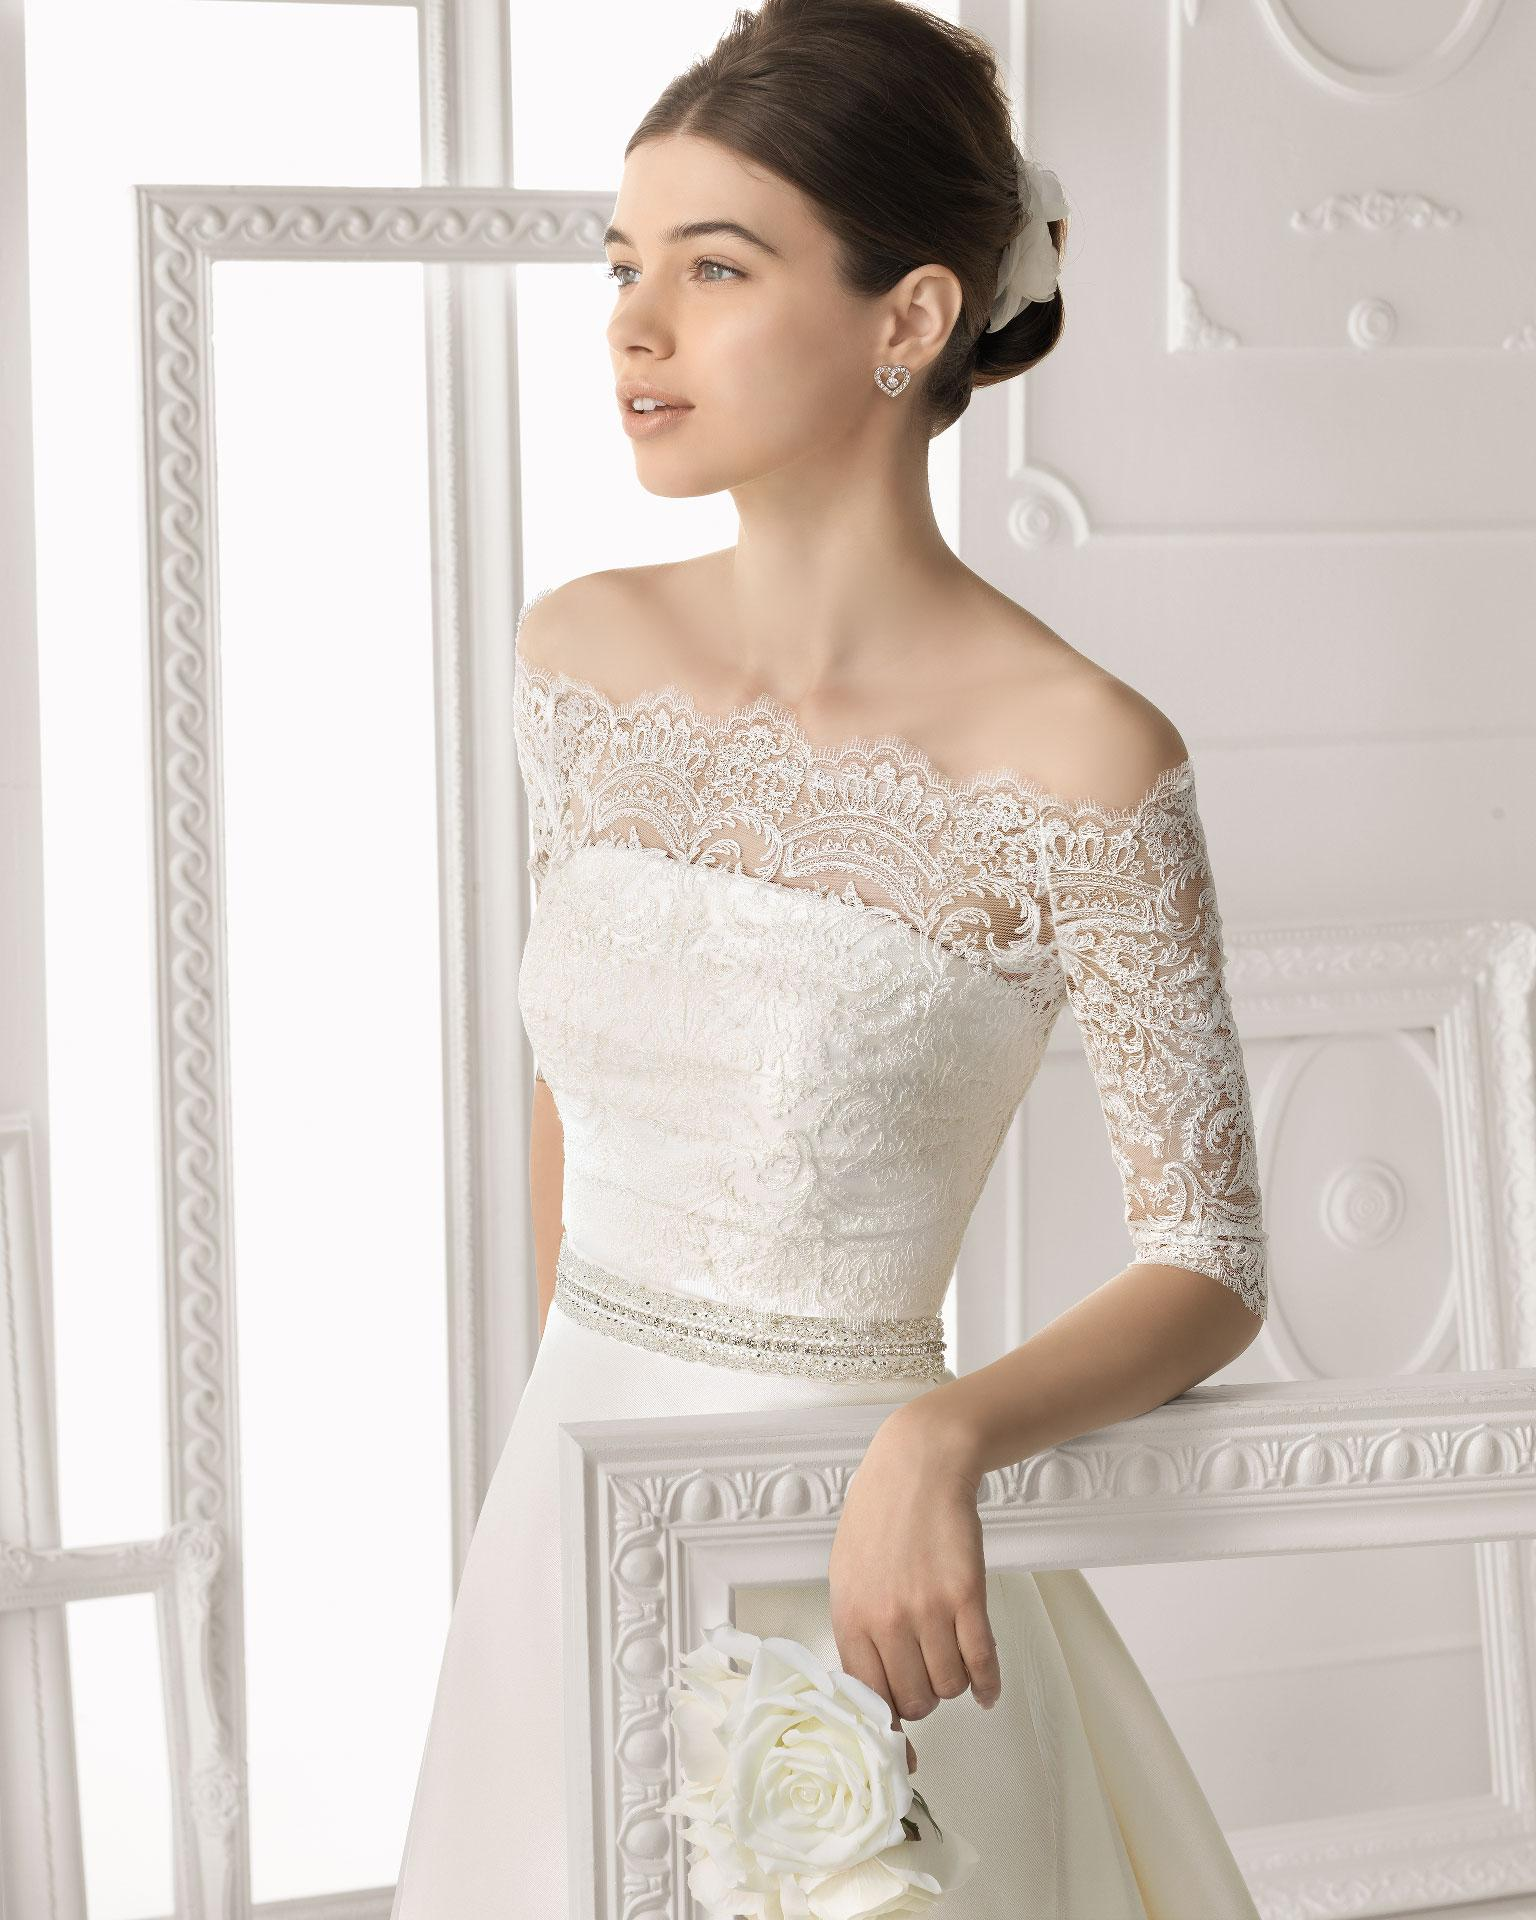 New Wedding Dresses New orleans – Wedding